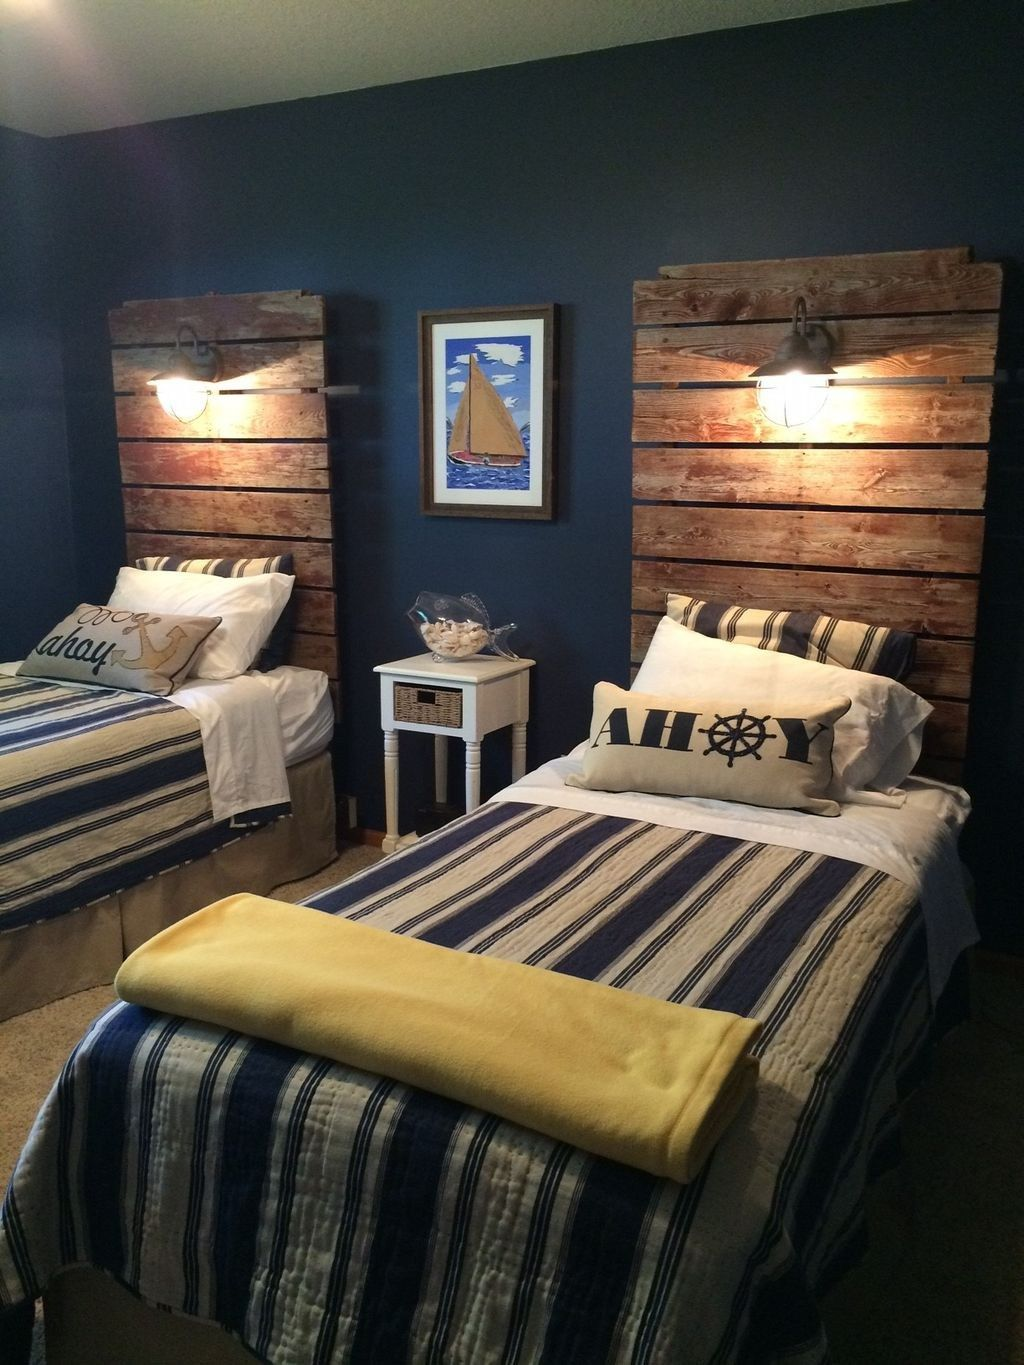 38 Best Bedroom Organization Ideas And Projects For 2019: 51 Best Creative DIY Headboard Ideas With Lights For Your